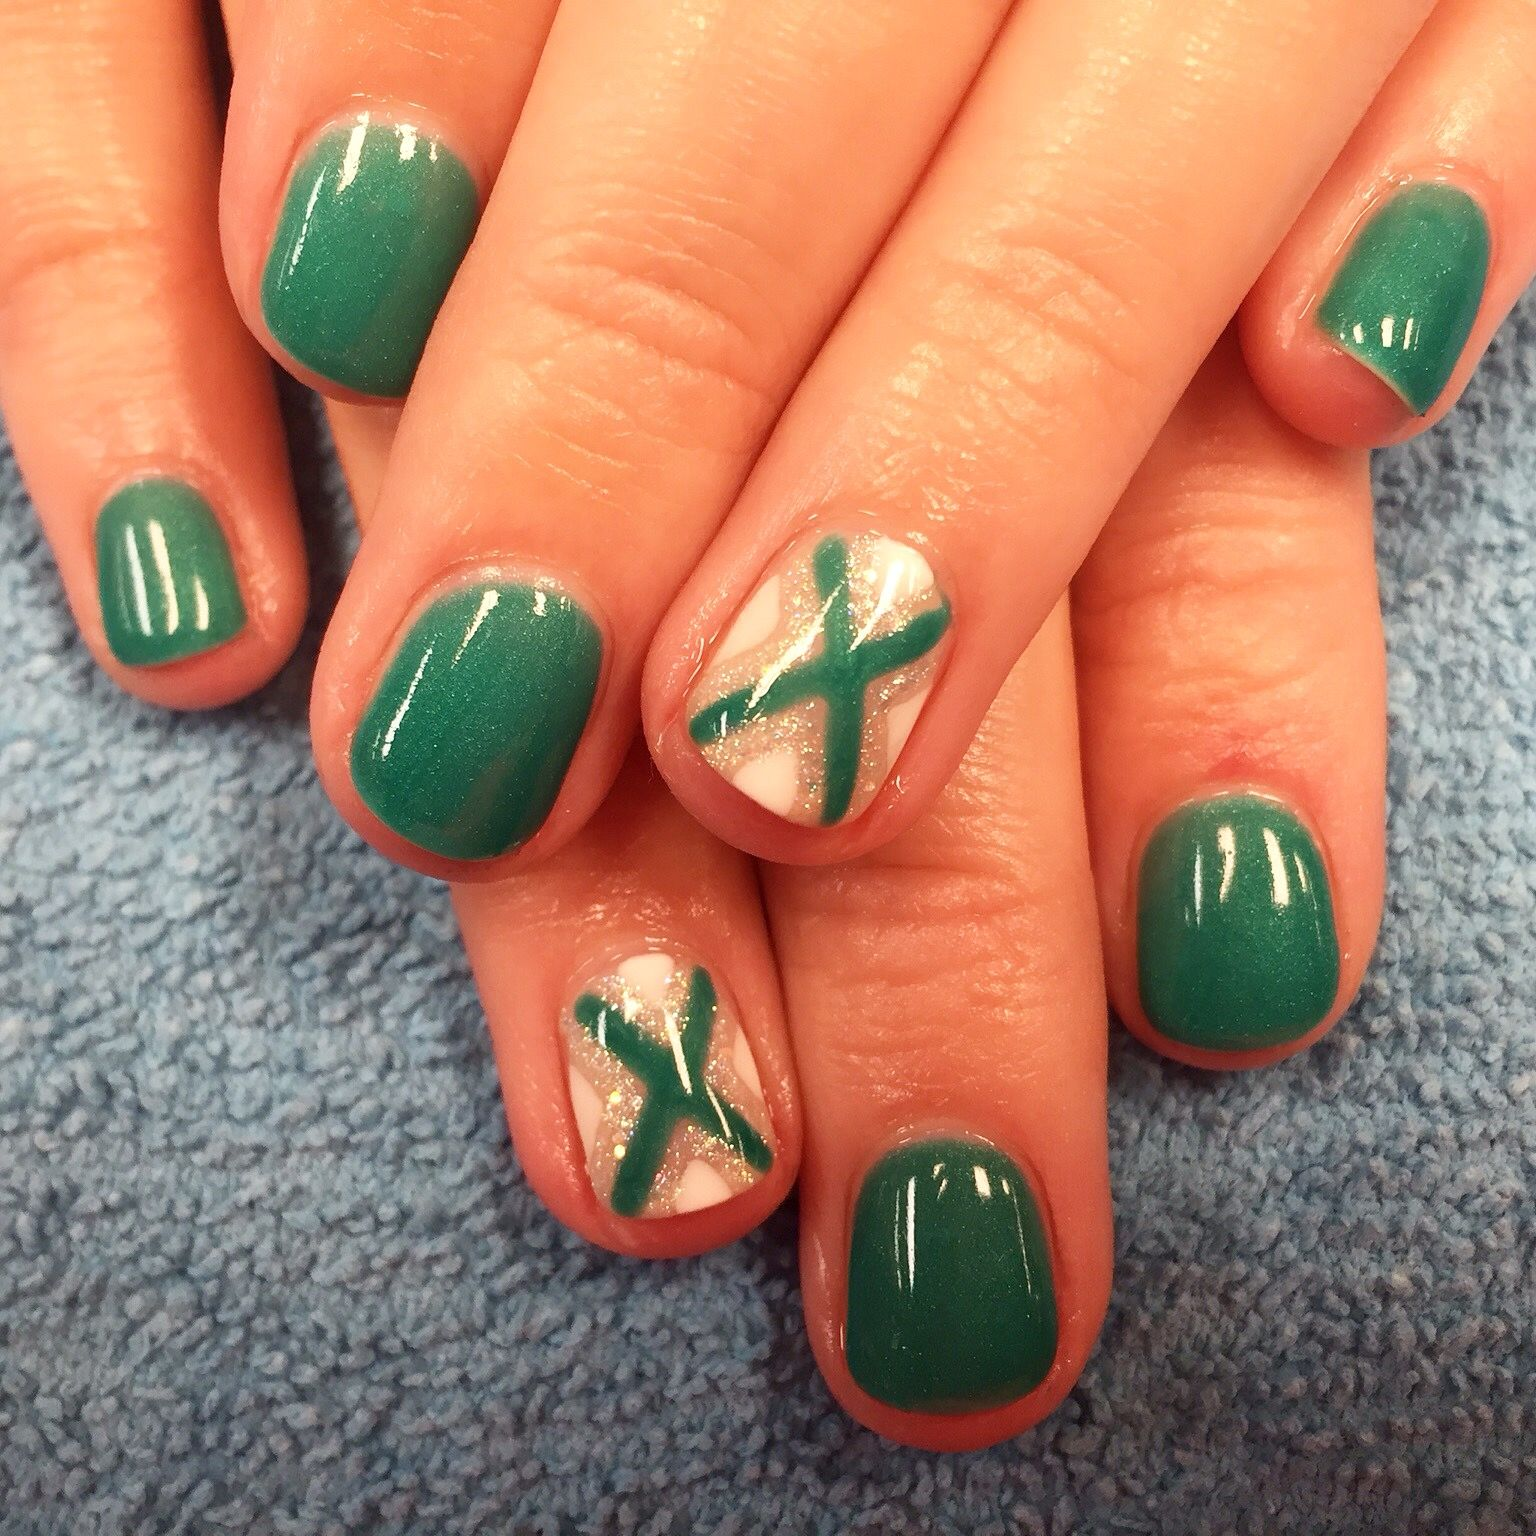 Pin by Pam Pace on Nail Art by Pam | Pinterest